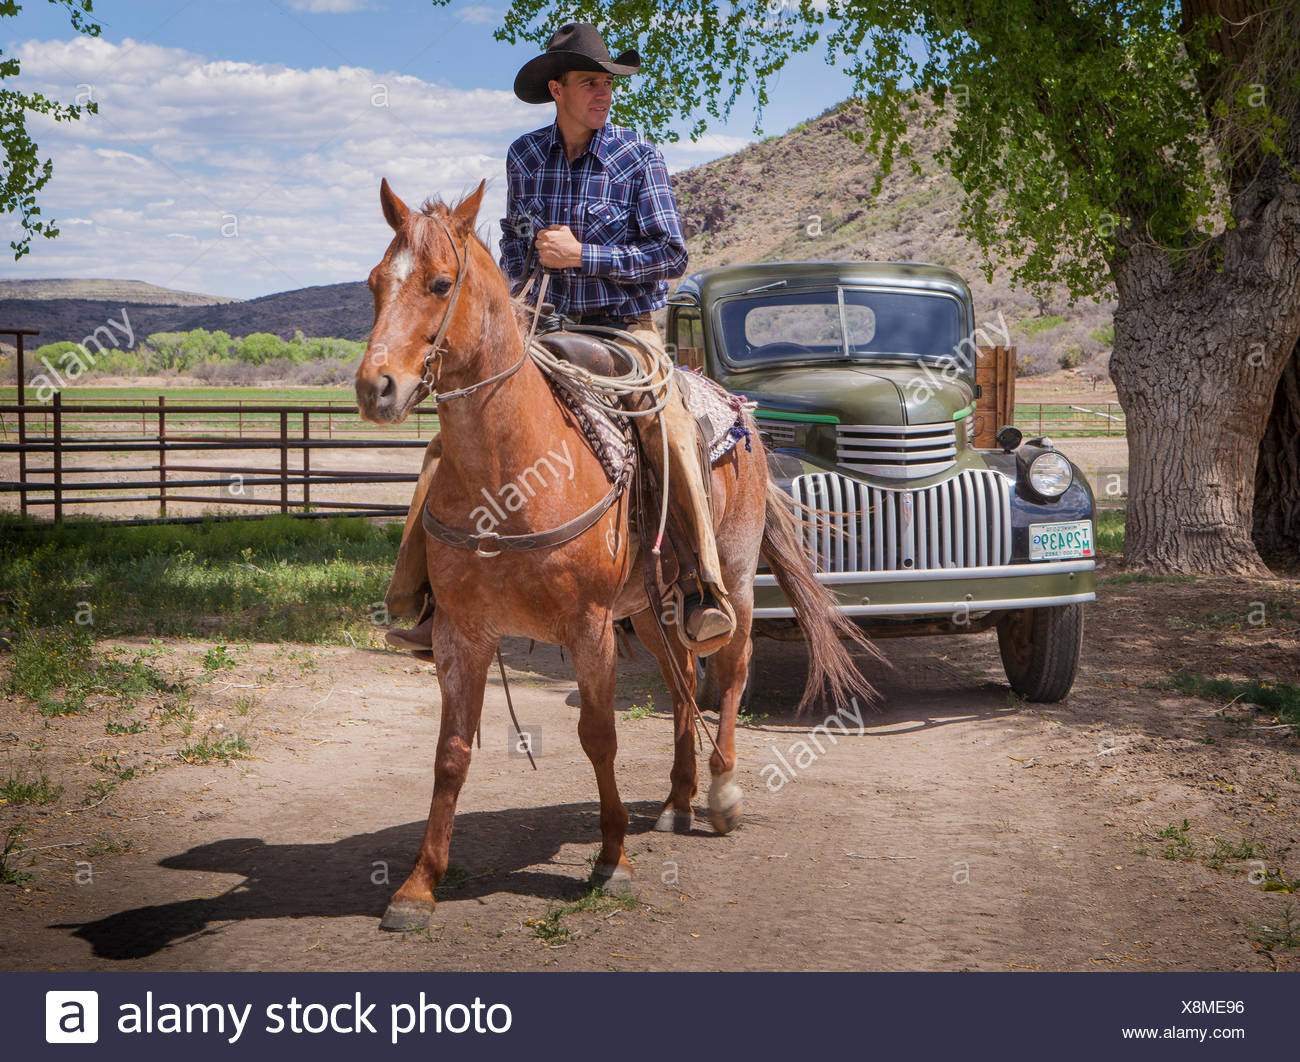 Cowboy riding horse near old antique truck Stock Photo